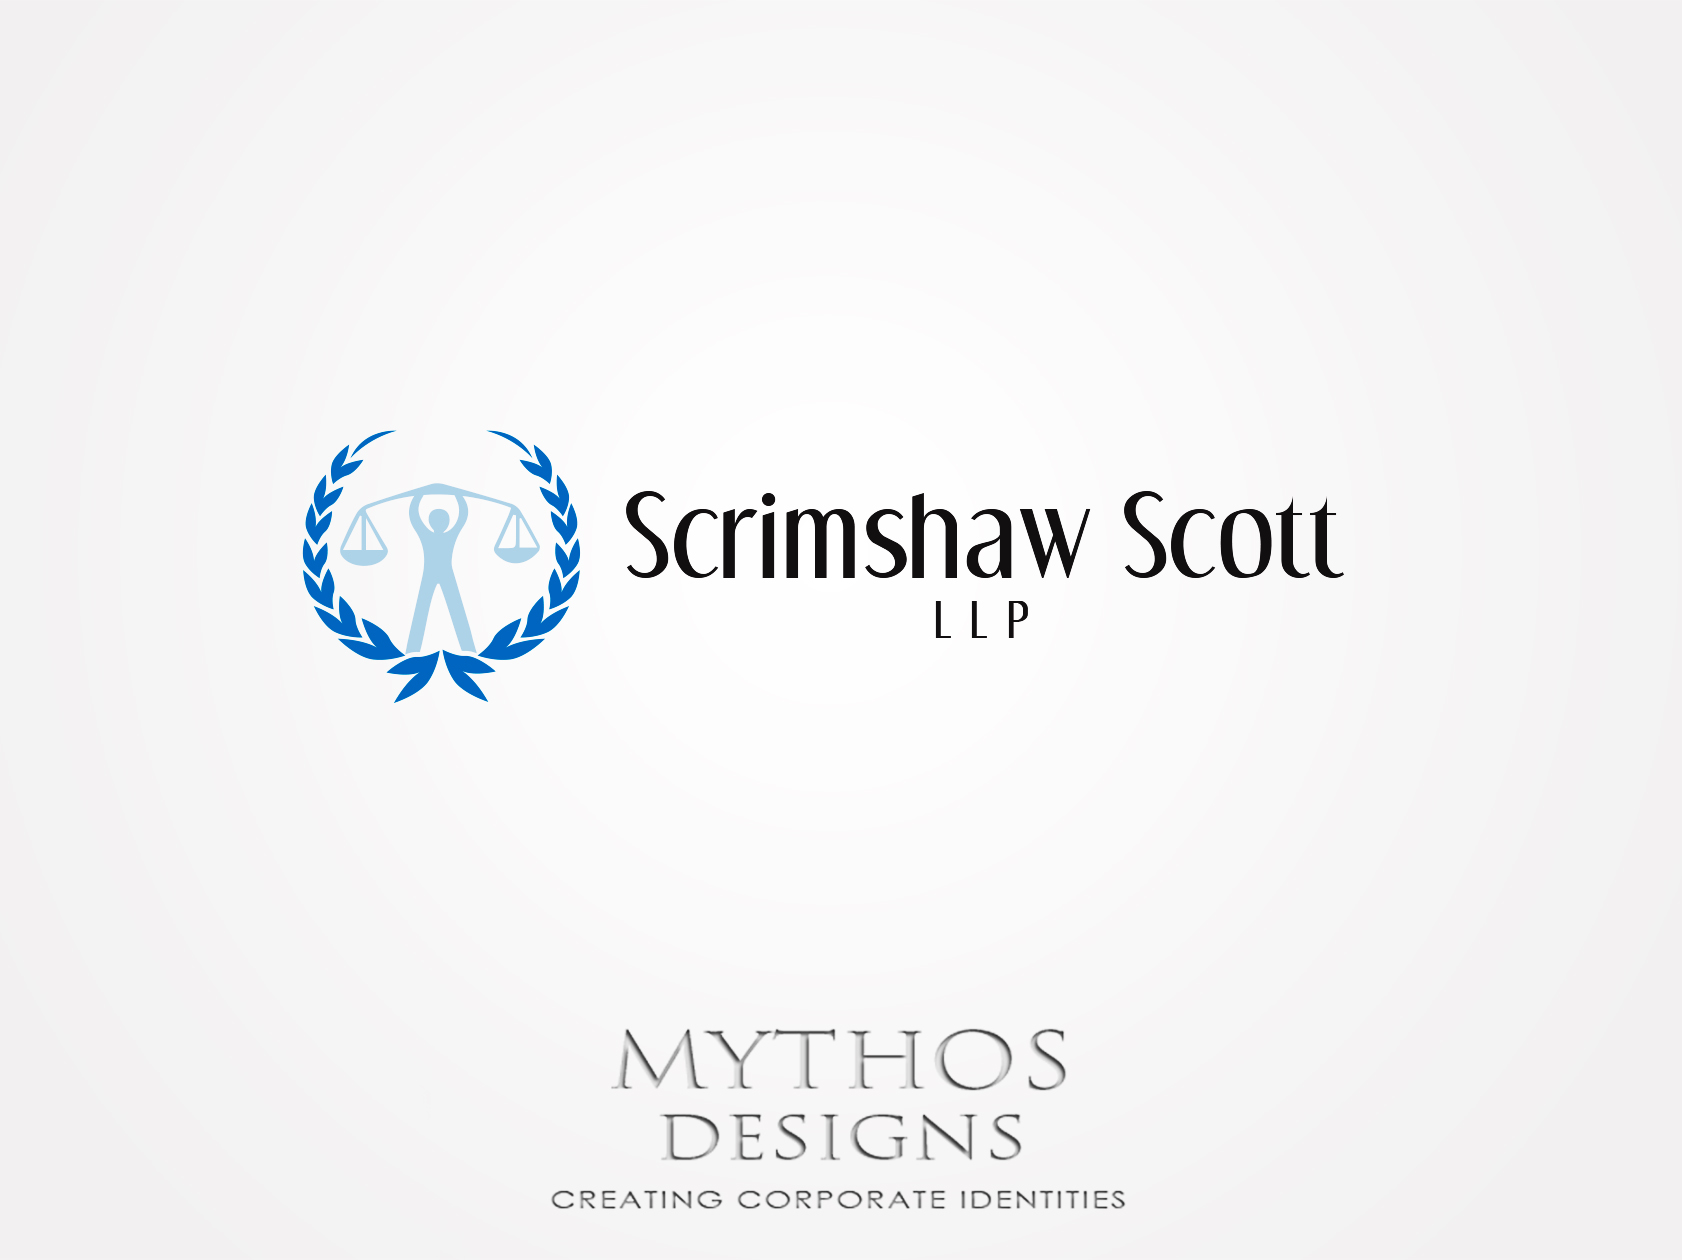 Logo Design by Mythos Designs - Entry No. 45 in the Logo Design Contest Creative Logo Design for Scrimshaw Scott LLP.